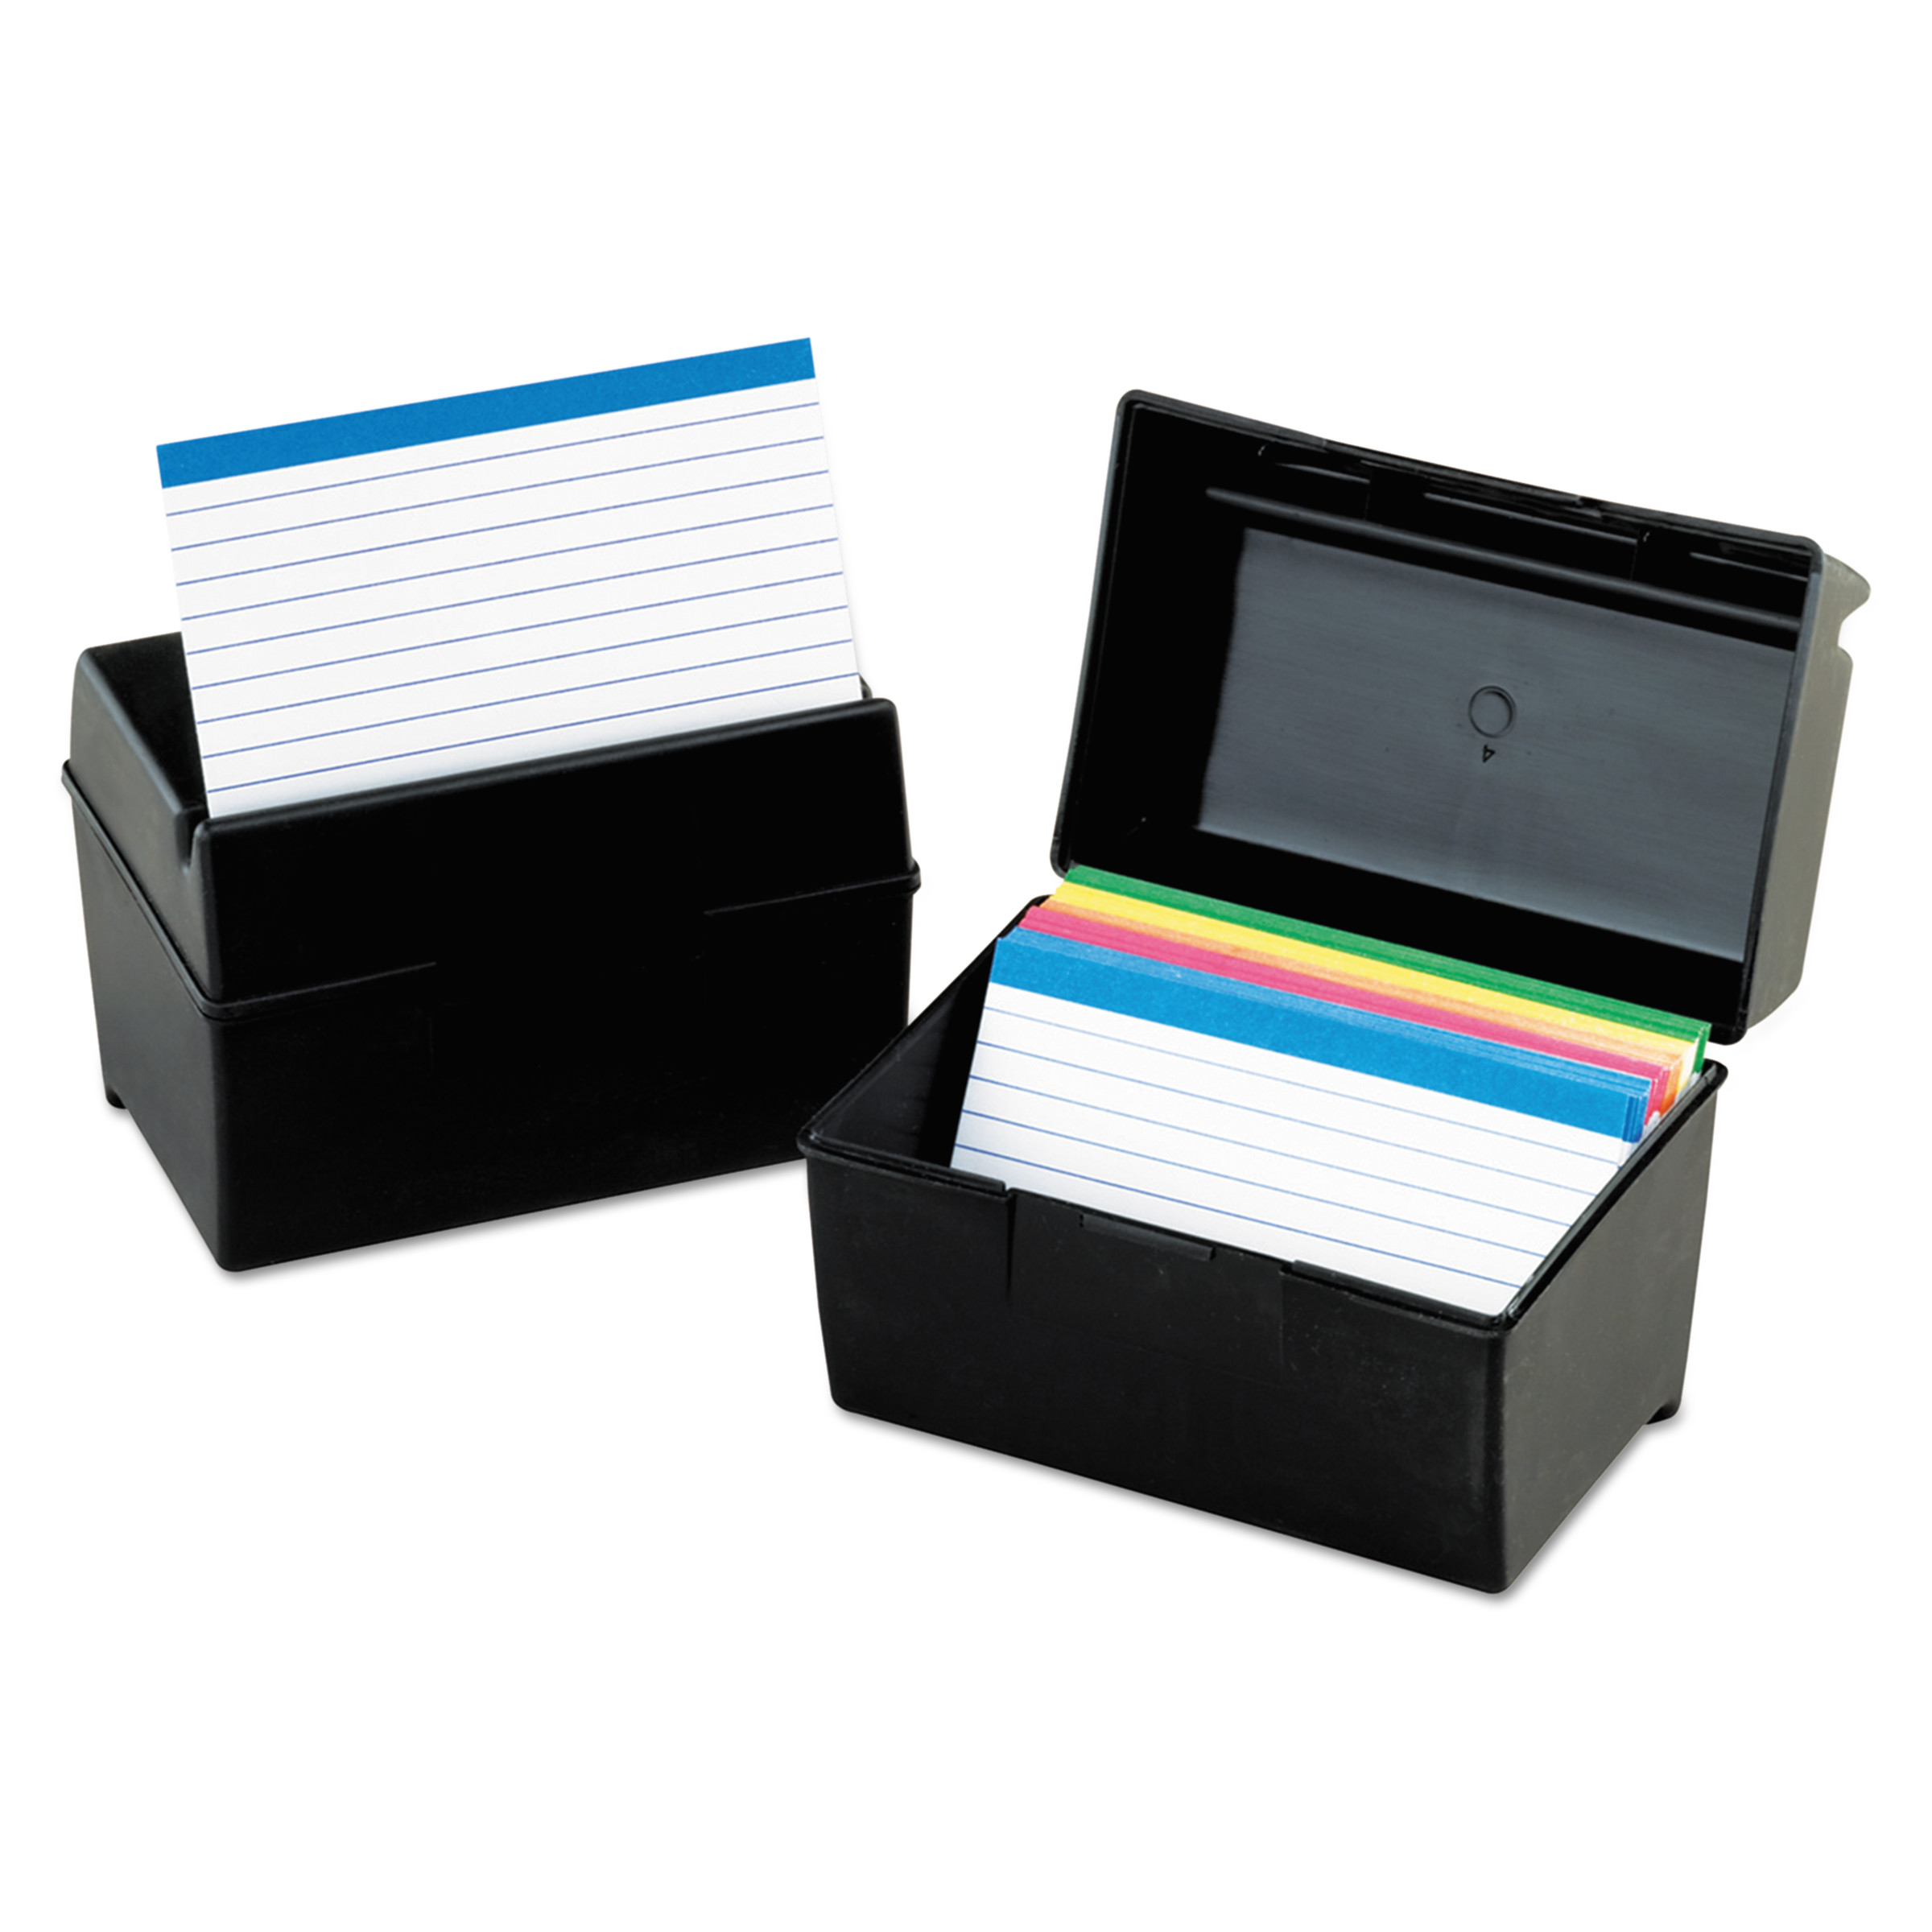 Oxford, OXF01581, Plastic Index Card Boxes with Lids, 1 Each, Black